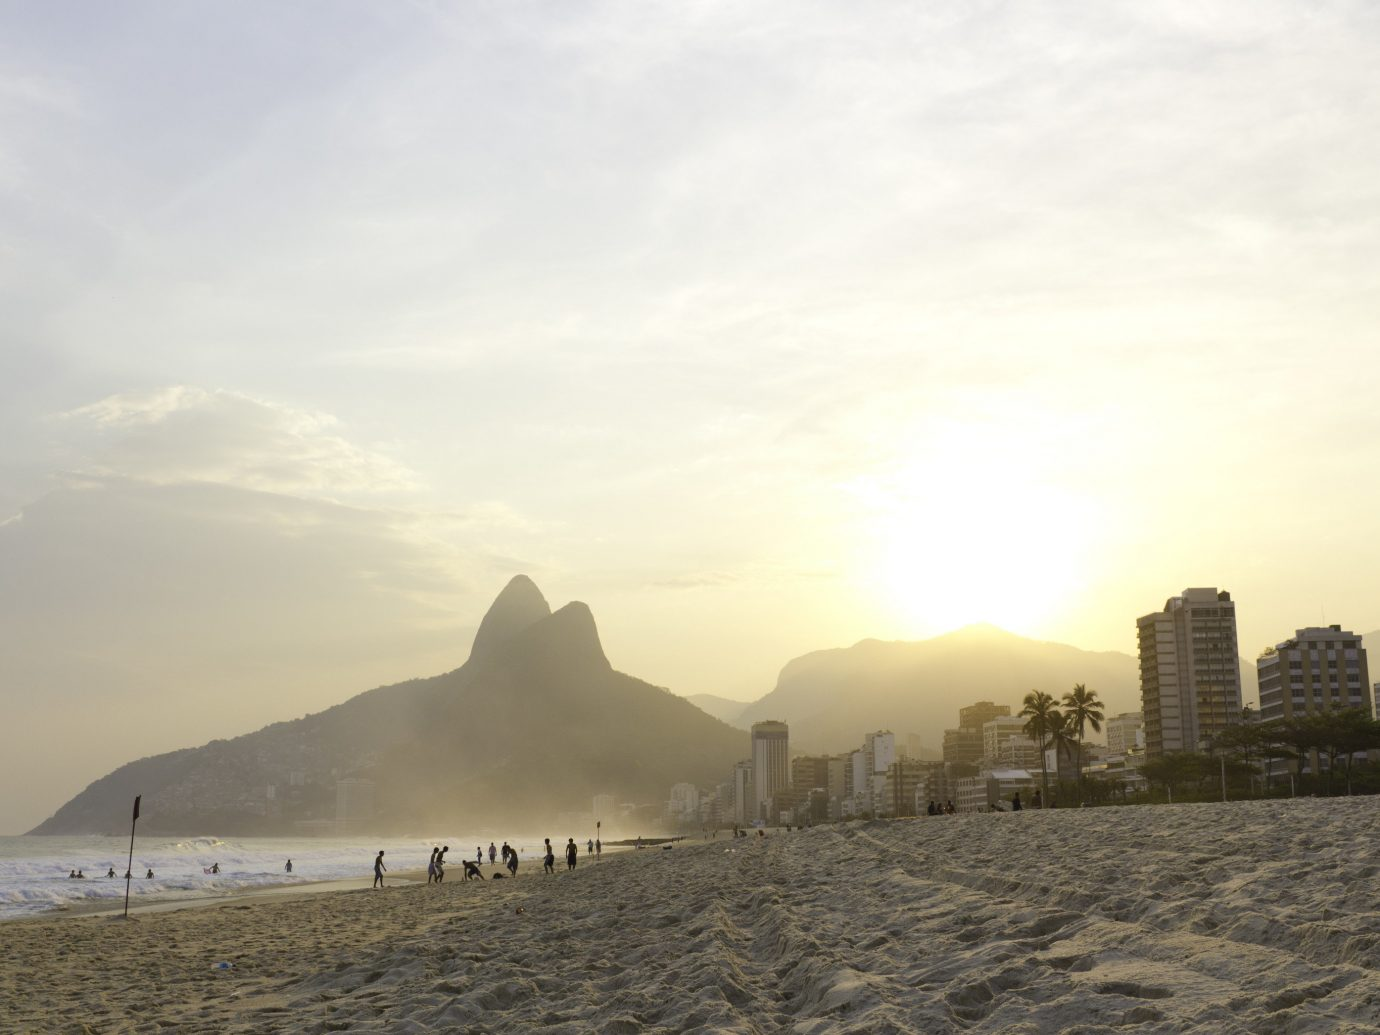 Beaches Brazil Trip Ideas sky outdoor Sea body of water Nature horizon Beach shore morning Coast cloud sand Ocean sunlight coastal and oceanic landforms evening Sunset sunrise calm dawn landscape water day sandy distance highland